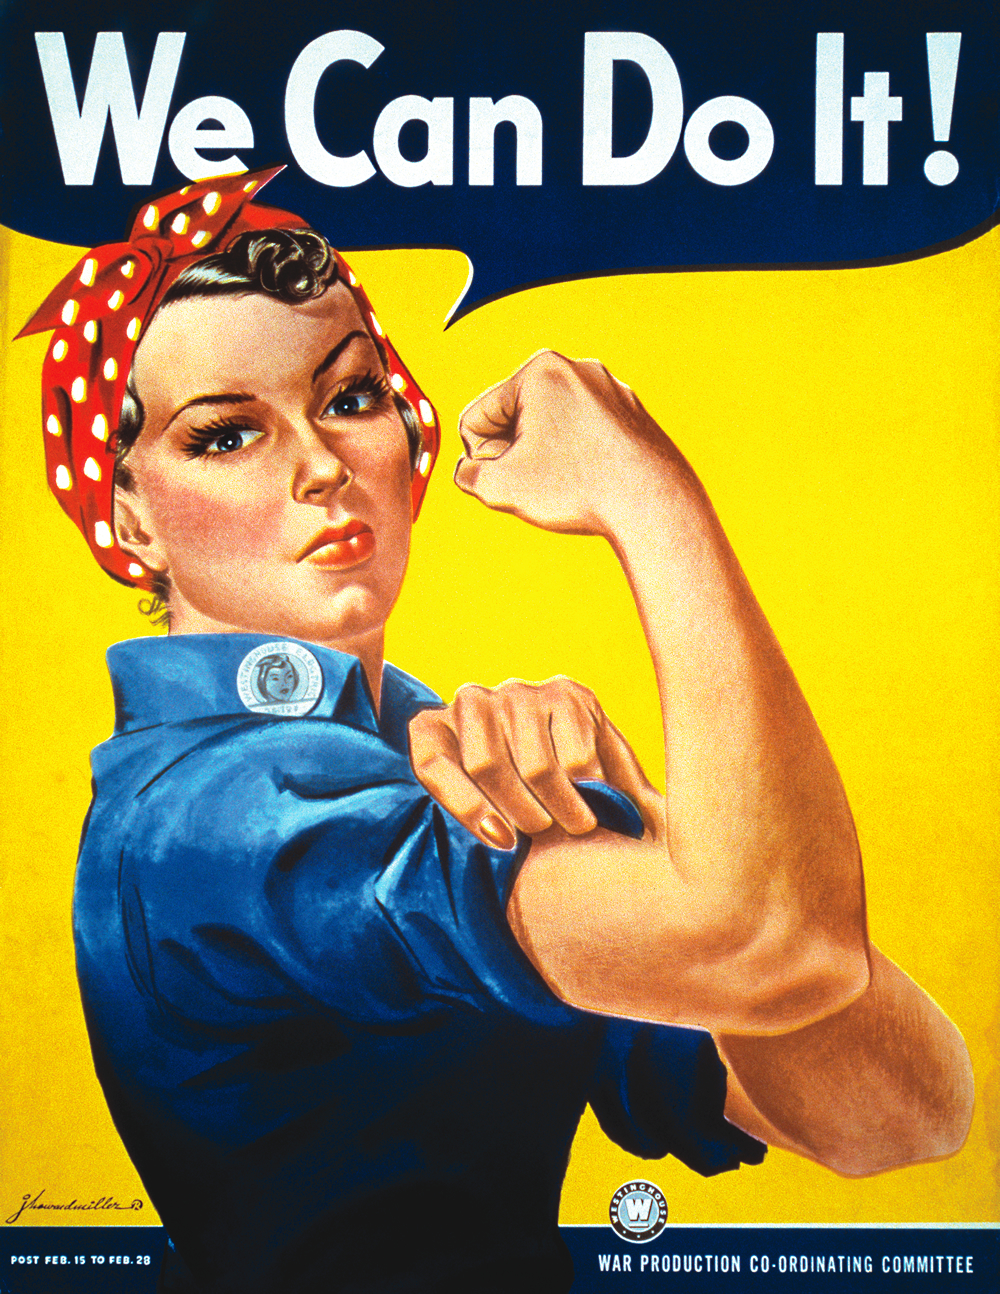 we can do it rosie picture represents gender roles and equality